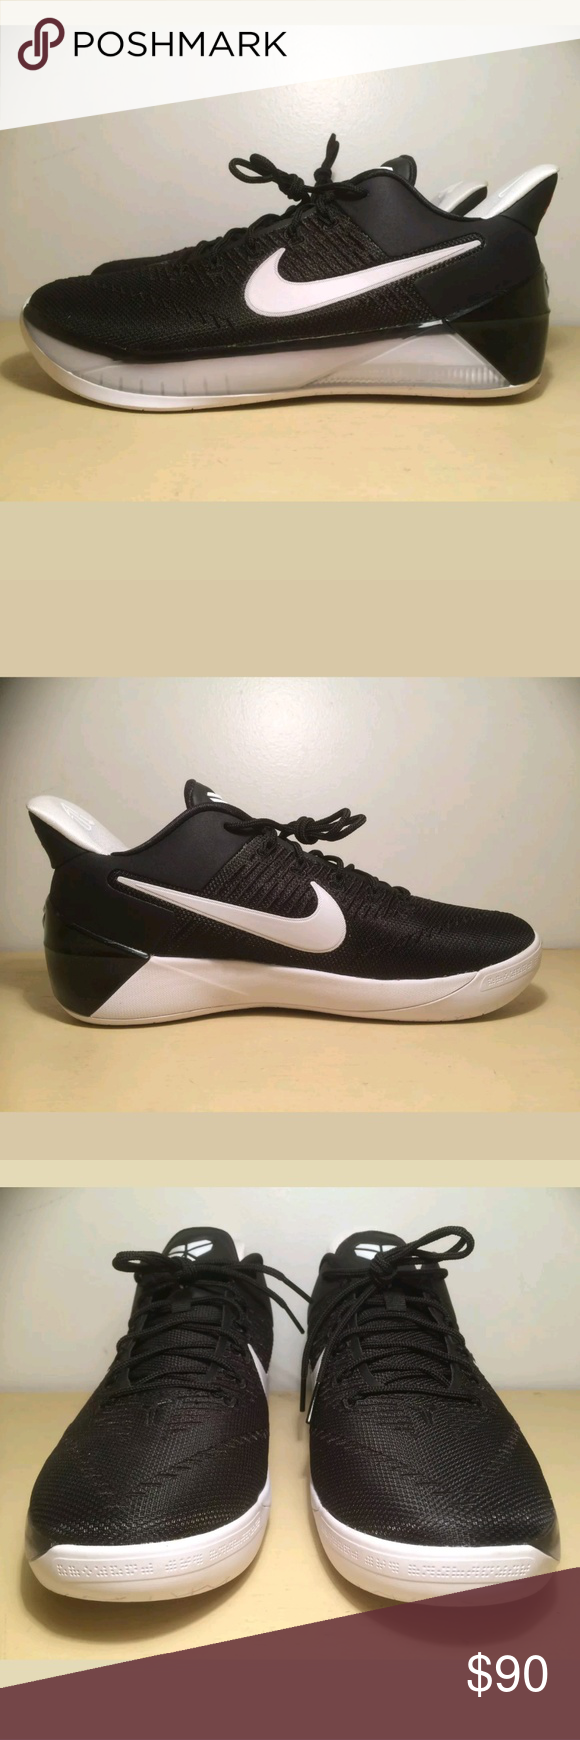 a3d6f64d066d Nike Kobe A.D. Basketball shoes boys 7y This item is a brand new pair of Nike  Kobe A.D basketball shoes in boy s grade school sizing.